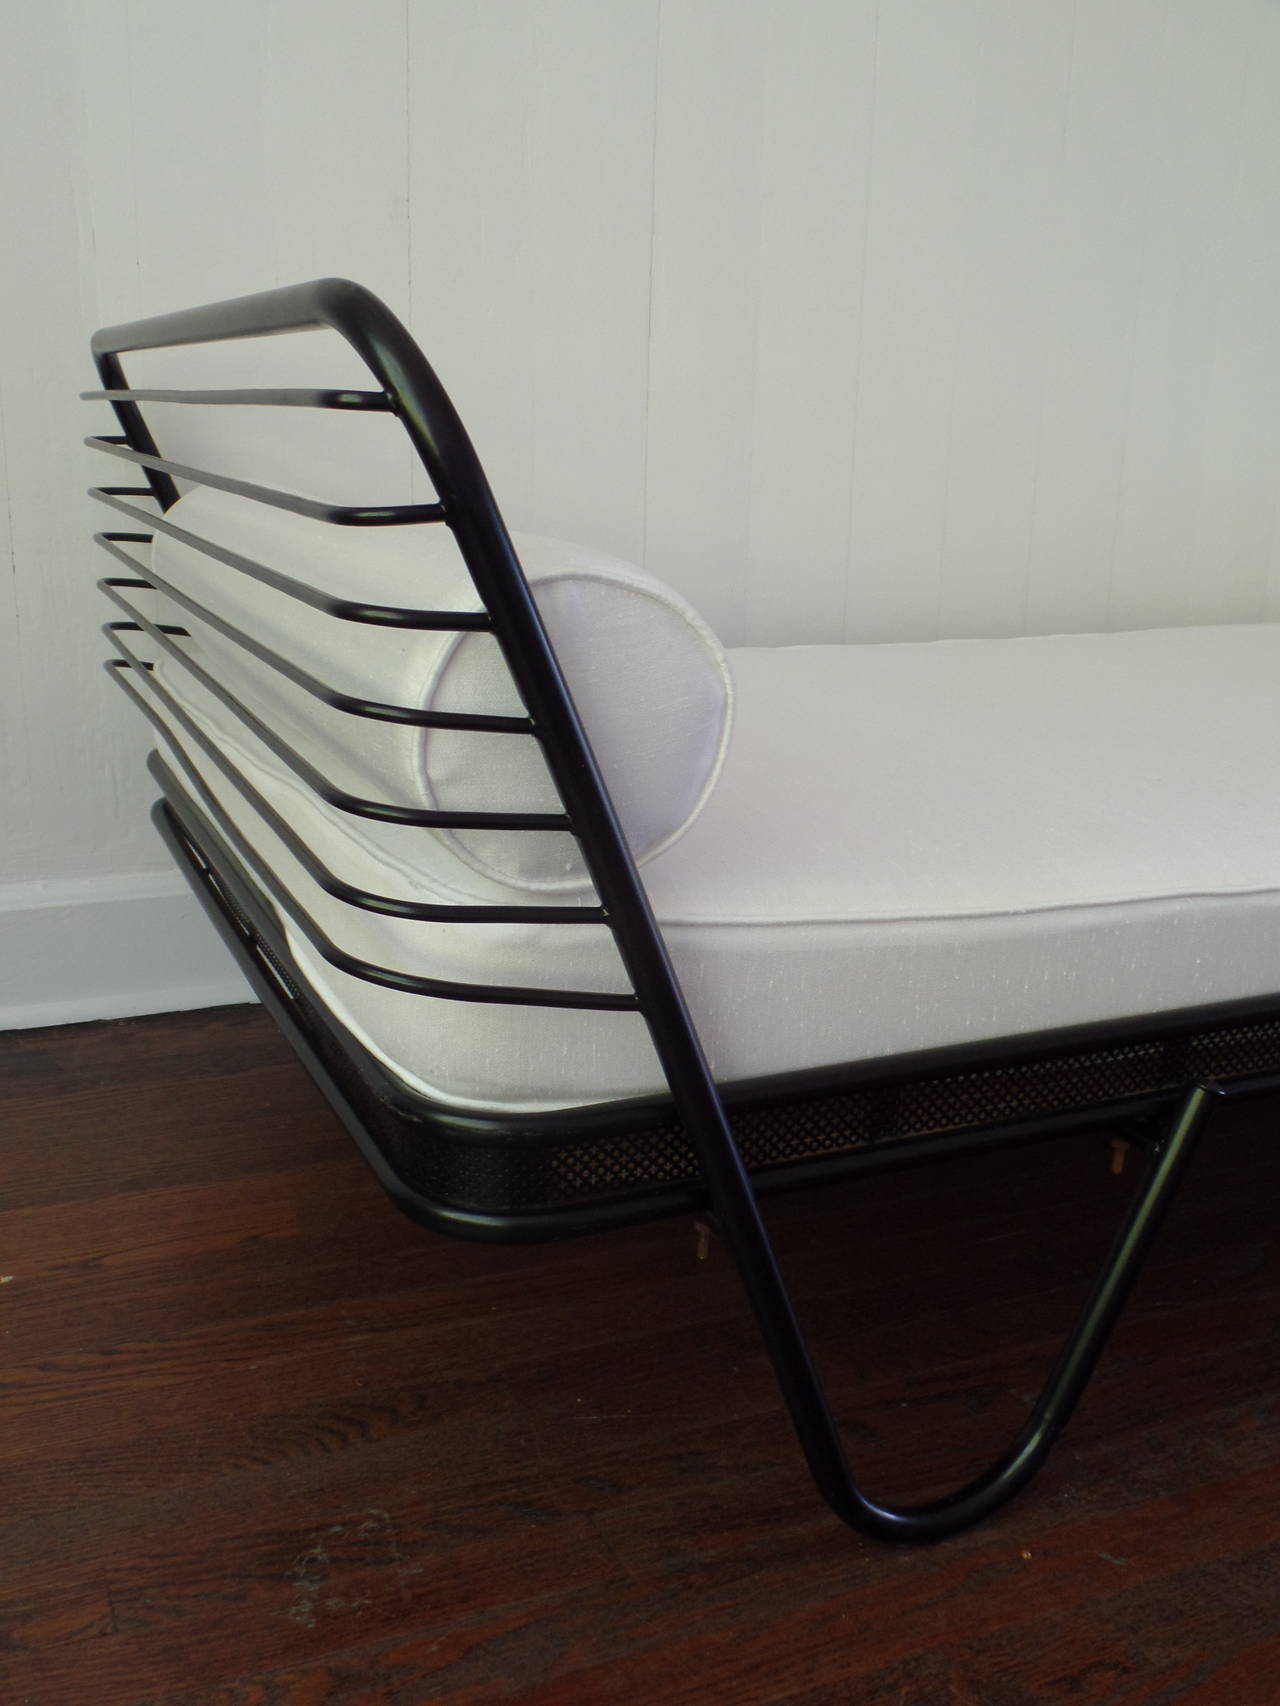 French Mid-Century Modern 'Kyoto' Enameled Iron Daybed / Bed by Mathieu Matégot For Sale 1